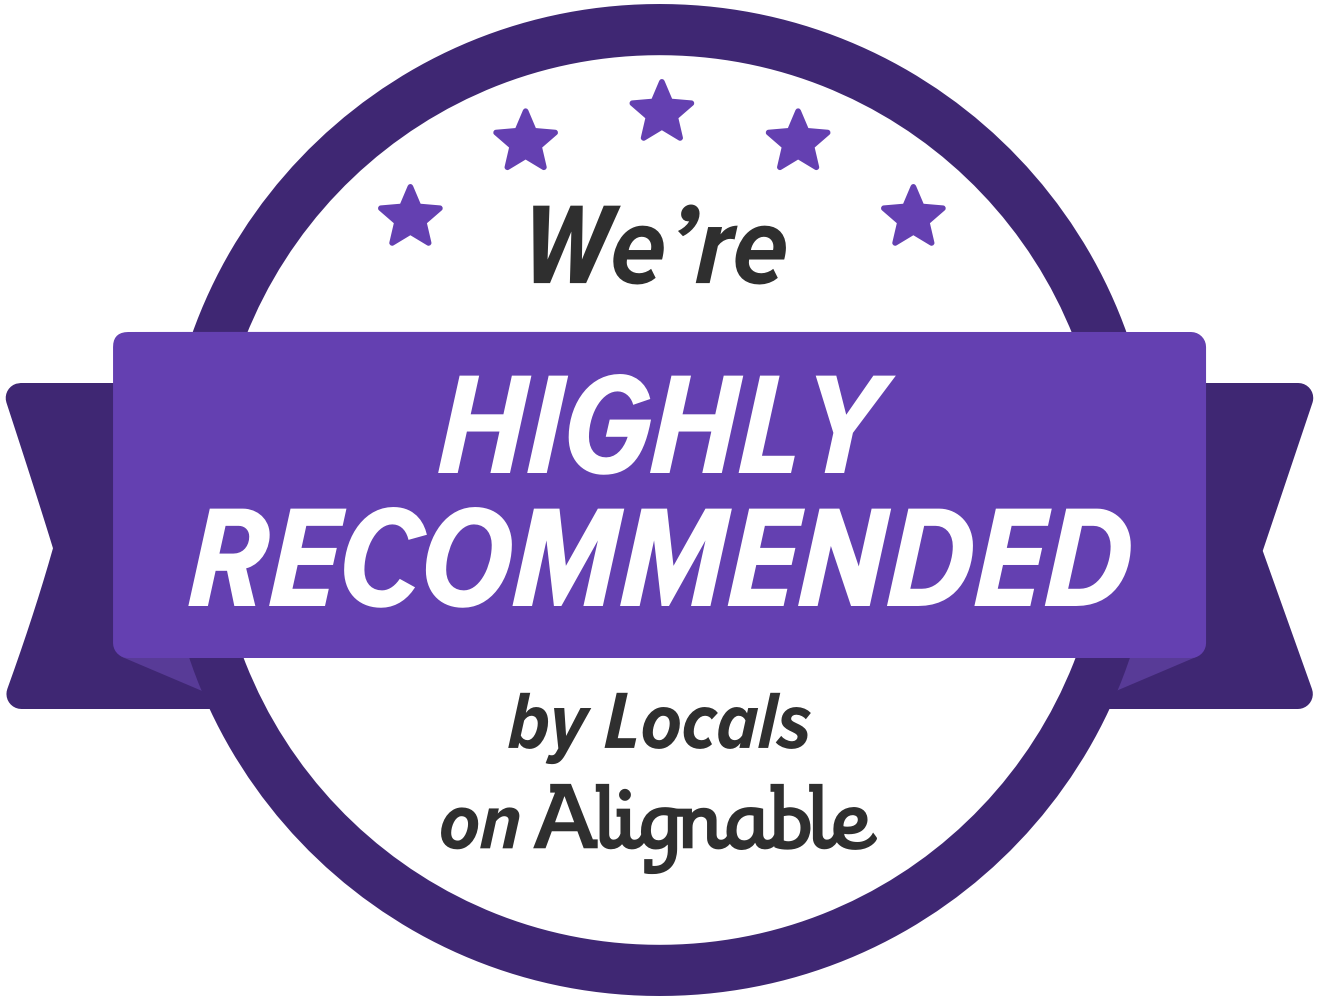 We're highly recommended by locals on alignable.